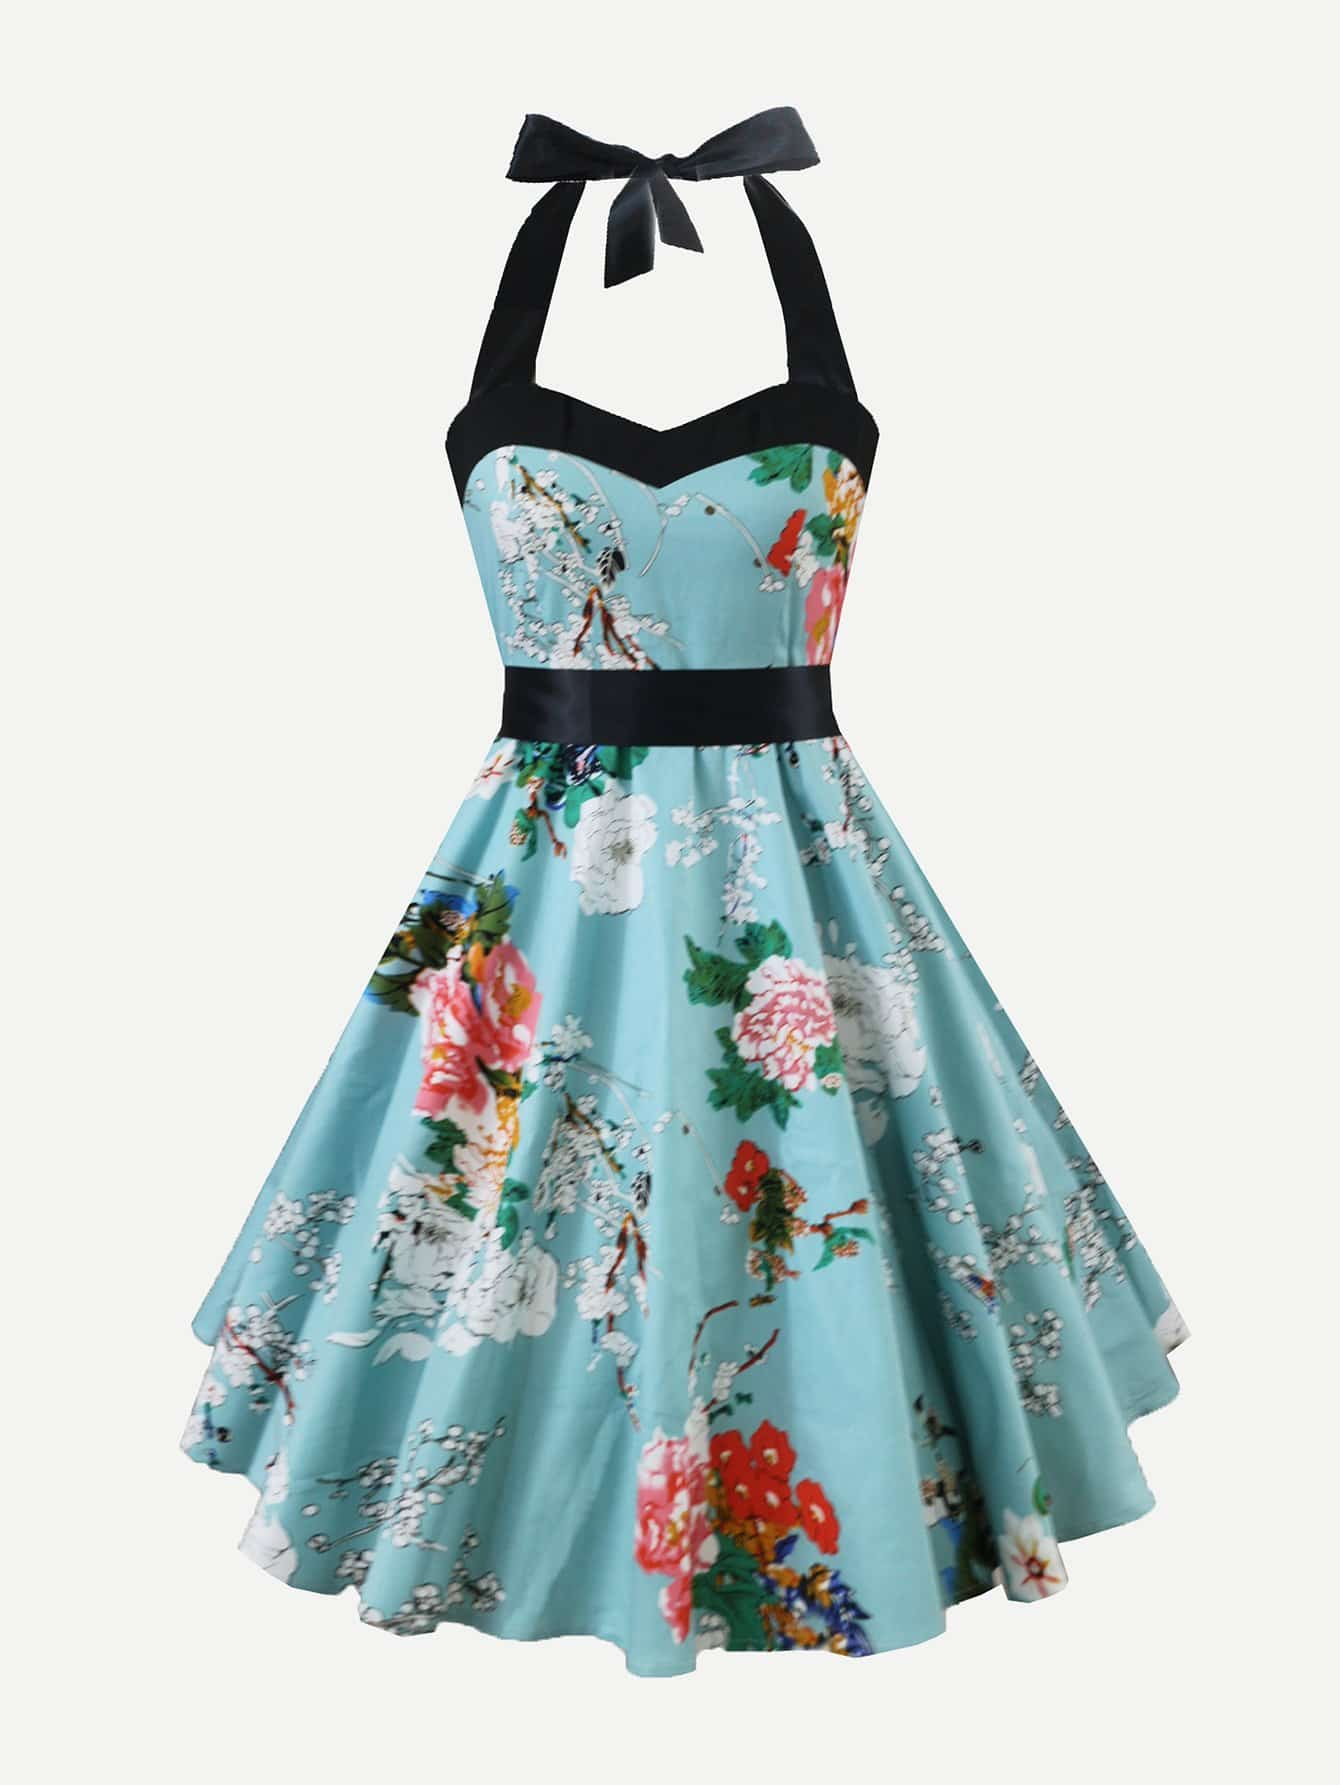 Floral Print Knot Back Halter Dress mixed print colorblock knot back halter dress